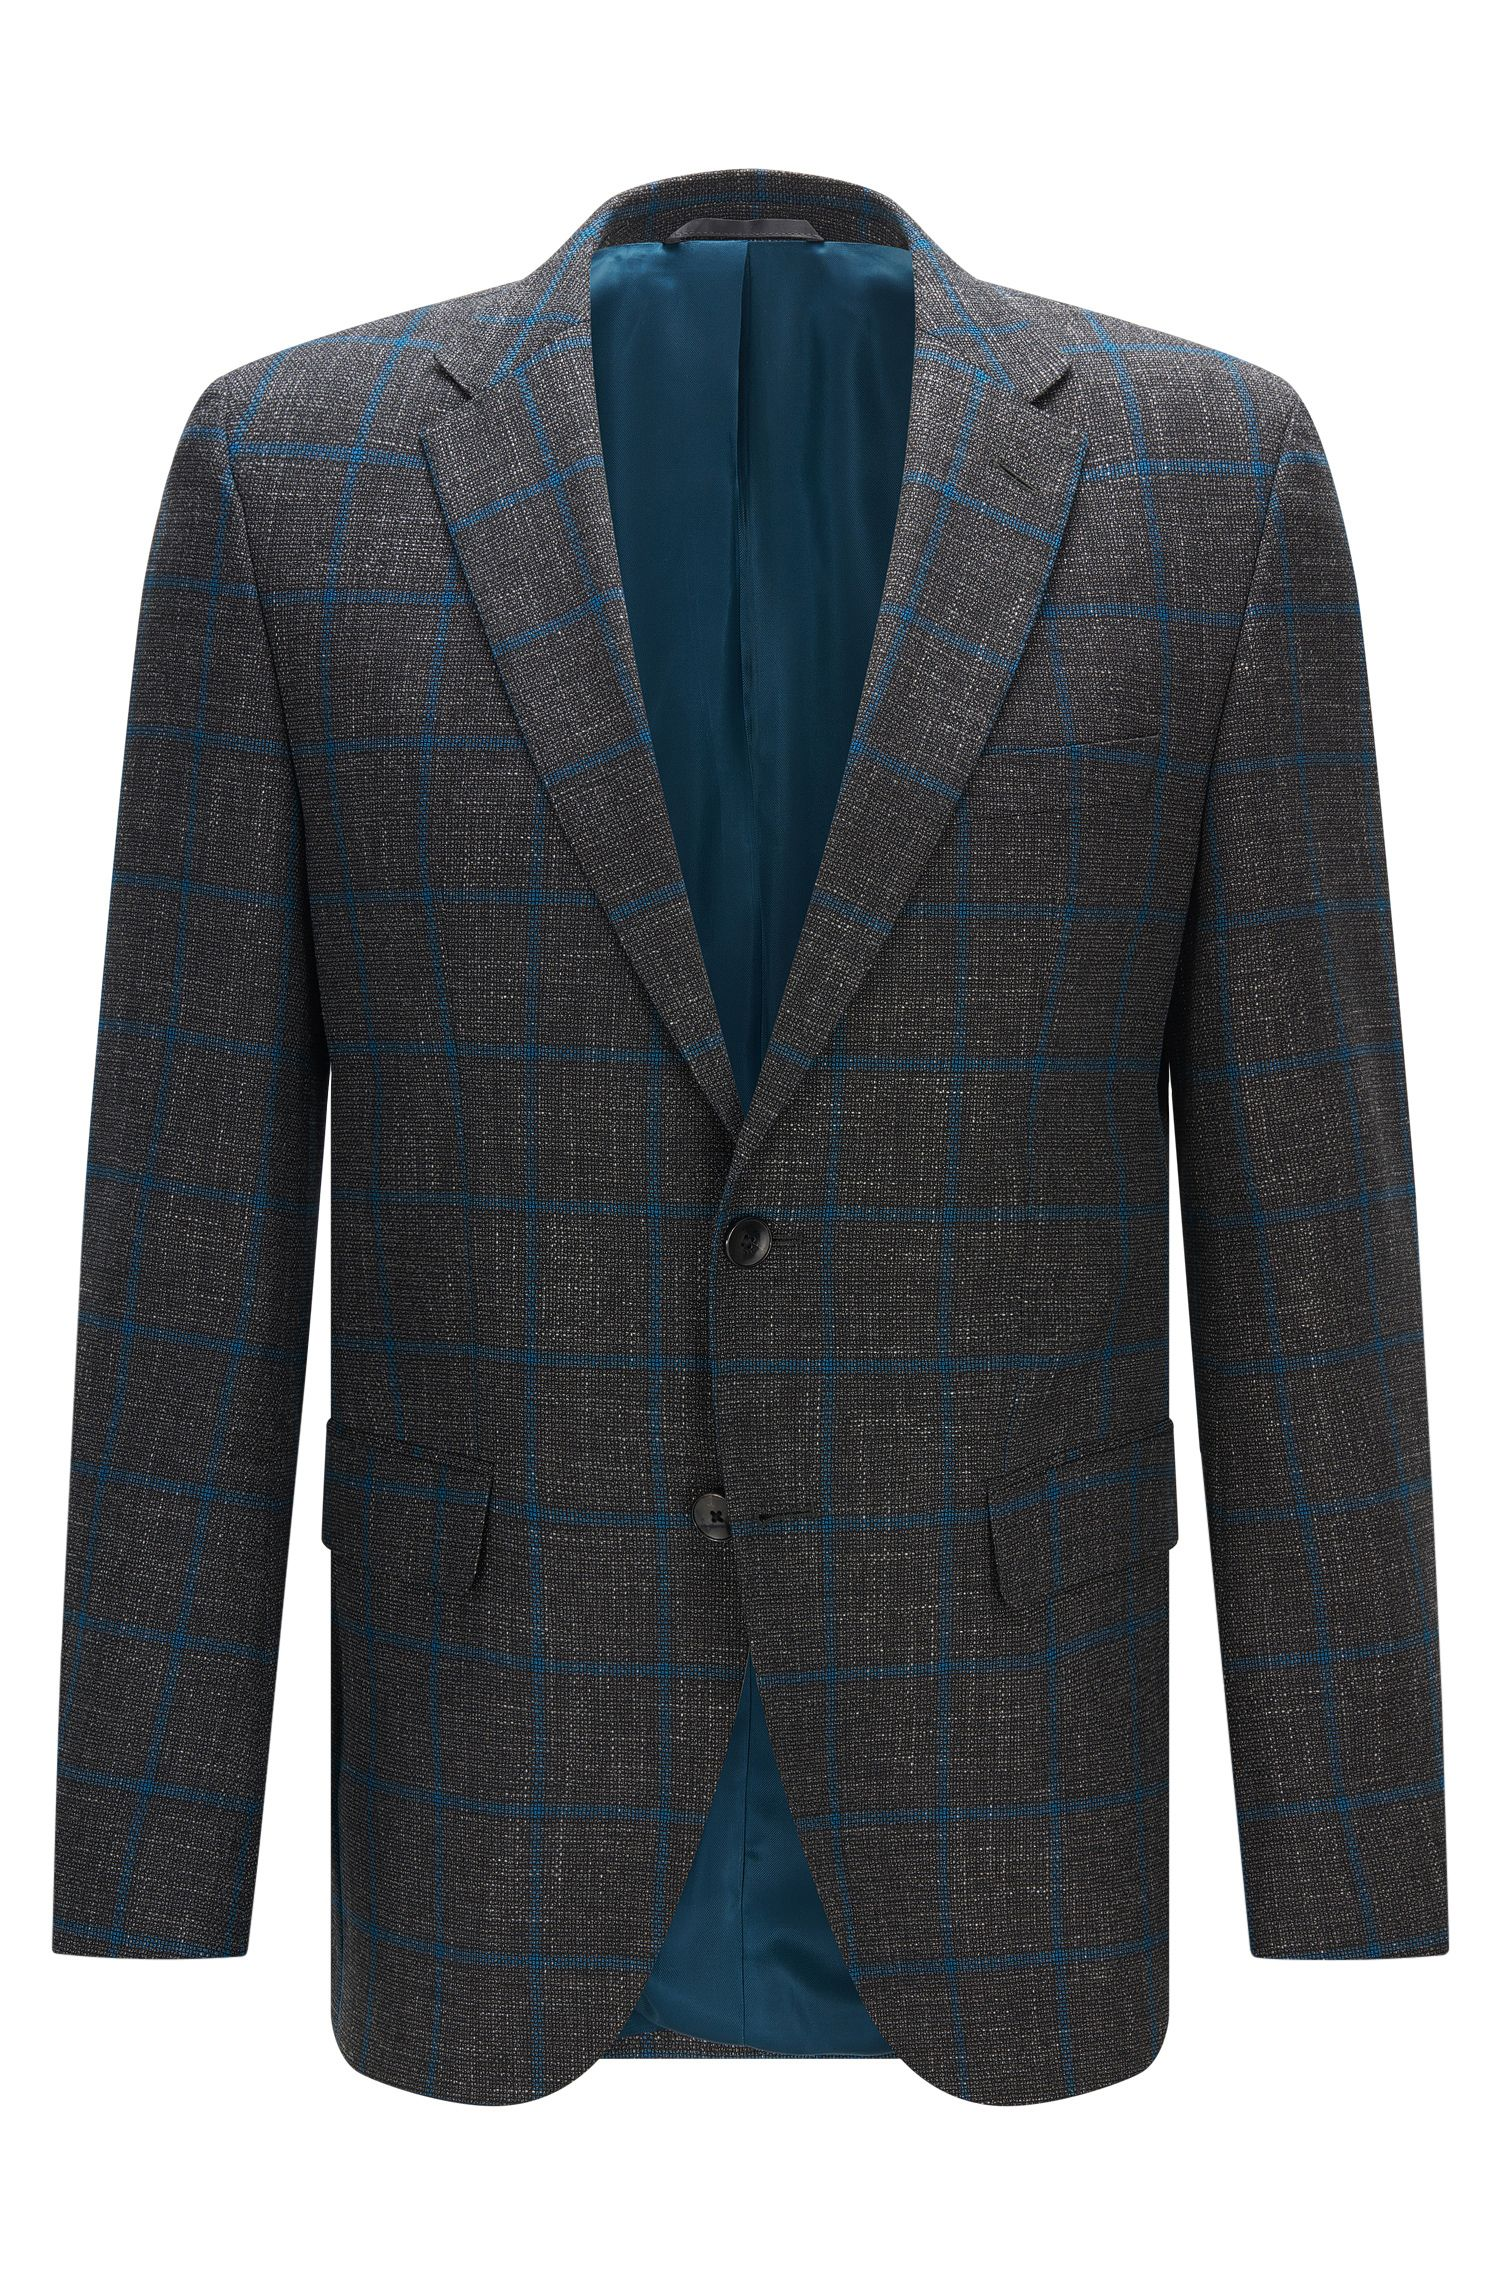 'Jeen' | Regular Fit, Windowpane Virgin Wool Blend Sport Coat